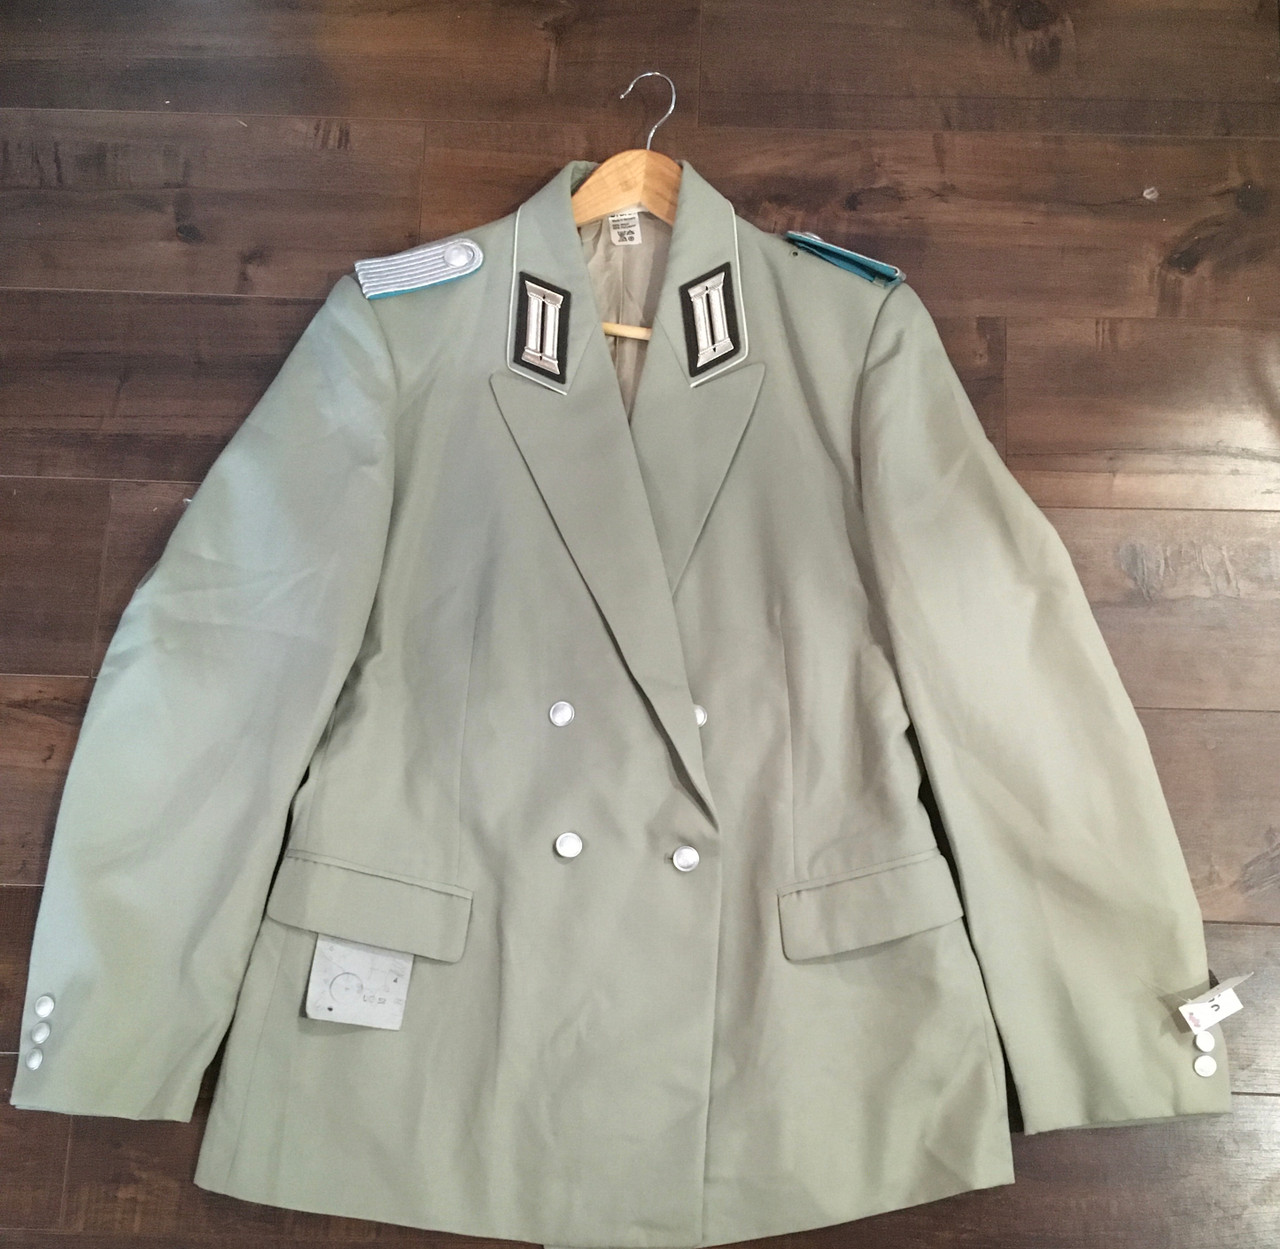 East German Coat With Patches Size 52